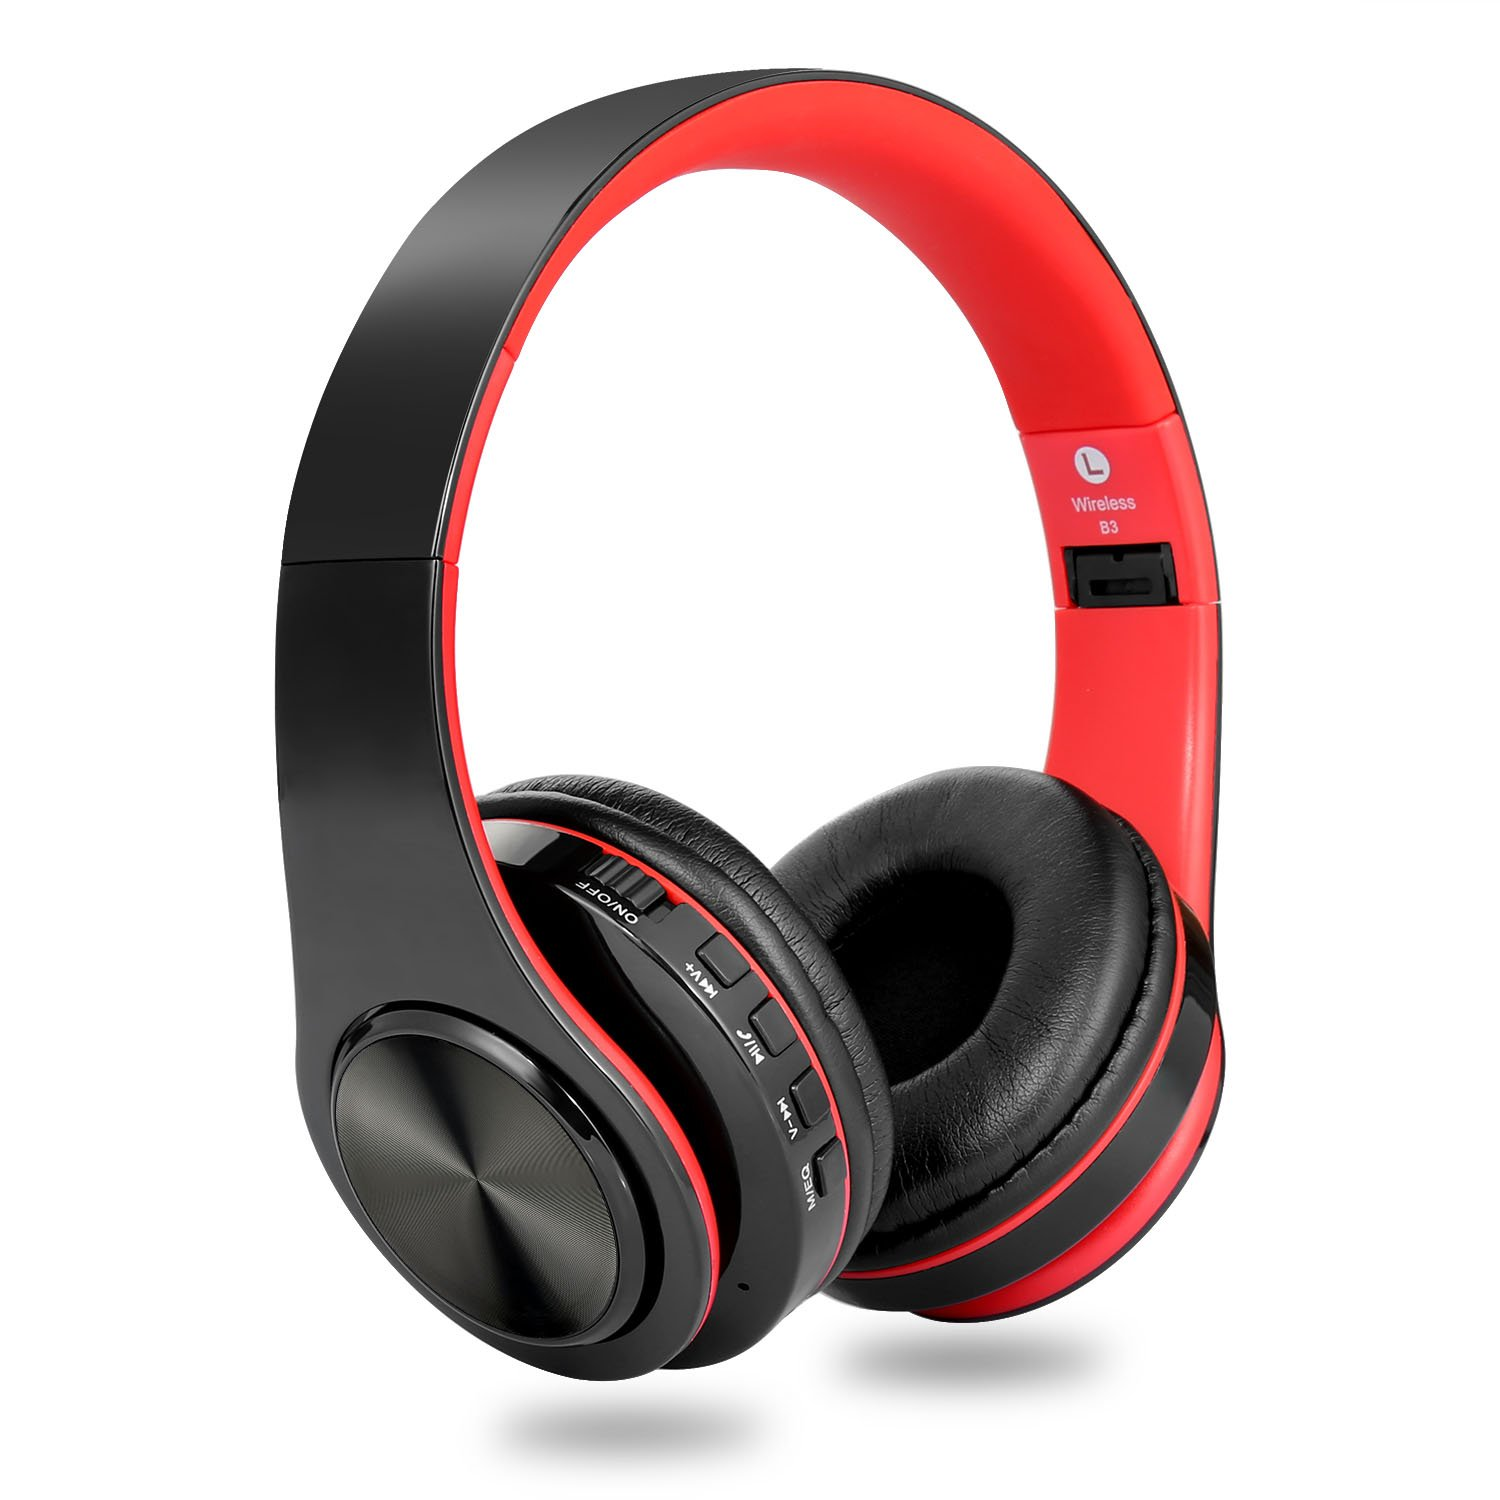 Wireless Headphones Over Ear, Foldable Hi-Fi Deep Bass Bluetooth Headphones with Mic and Wired Headset Support SD/TF Card for Travel Work Cell Phones PC (Red)